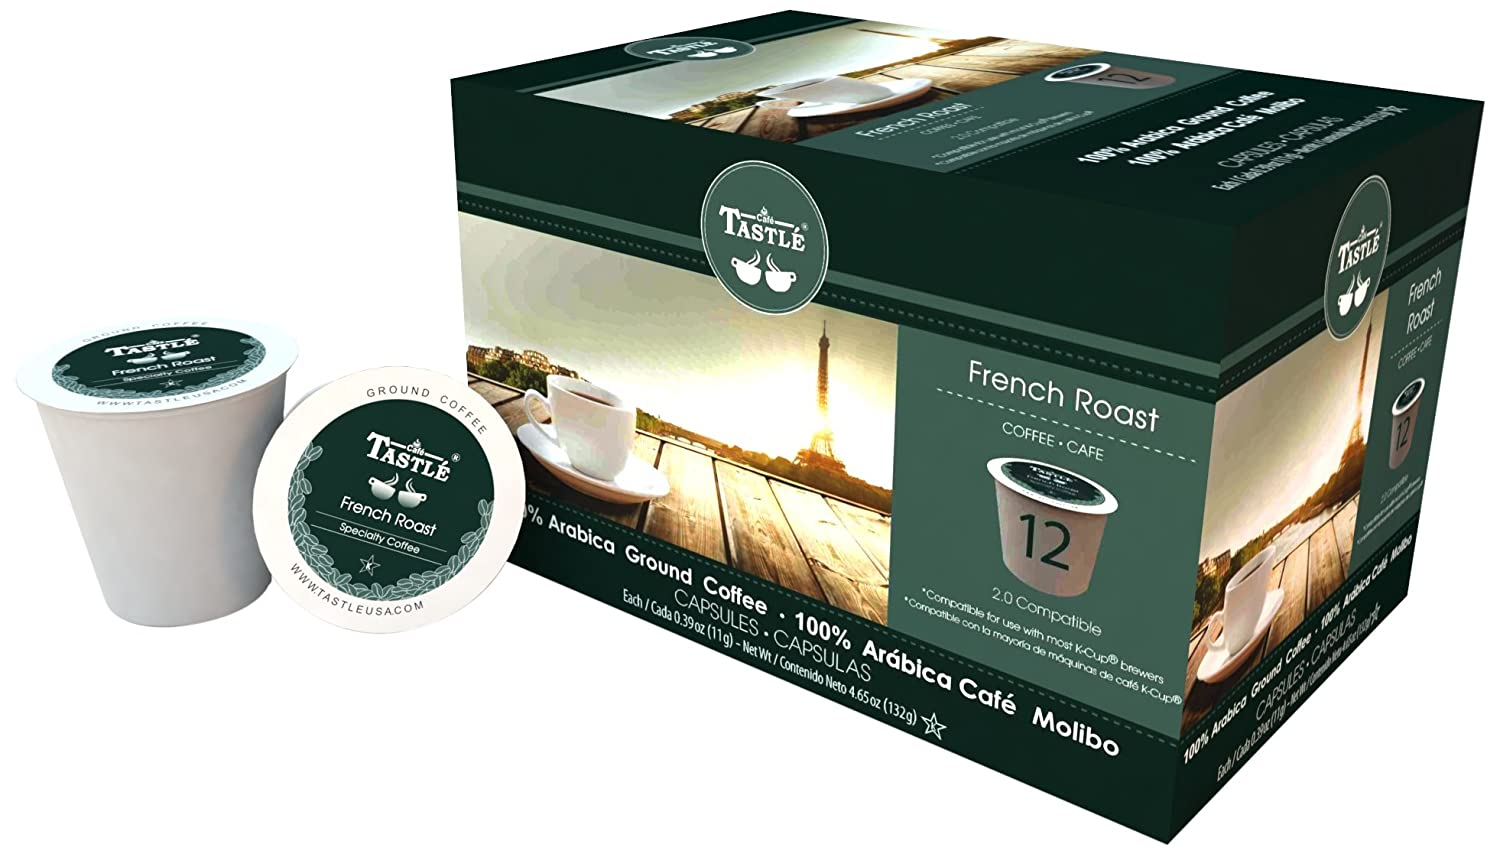 Cafe Tastlé French Roast Single Serve Coffee, 12 Count: Amazon.com: Grocery & Gourmet Food